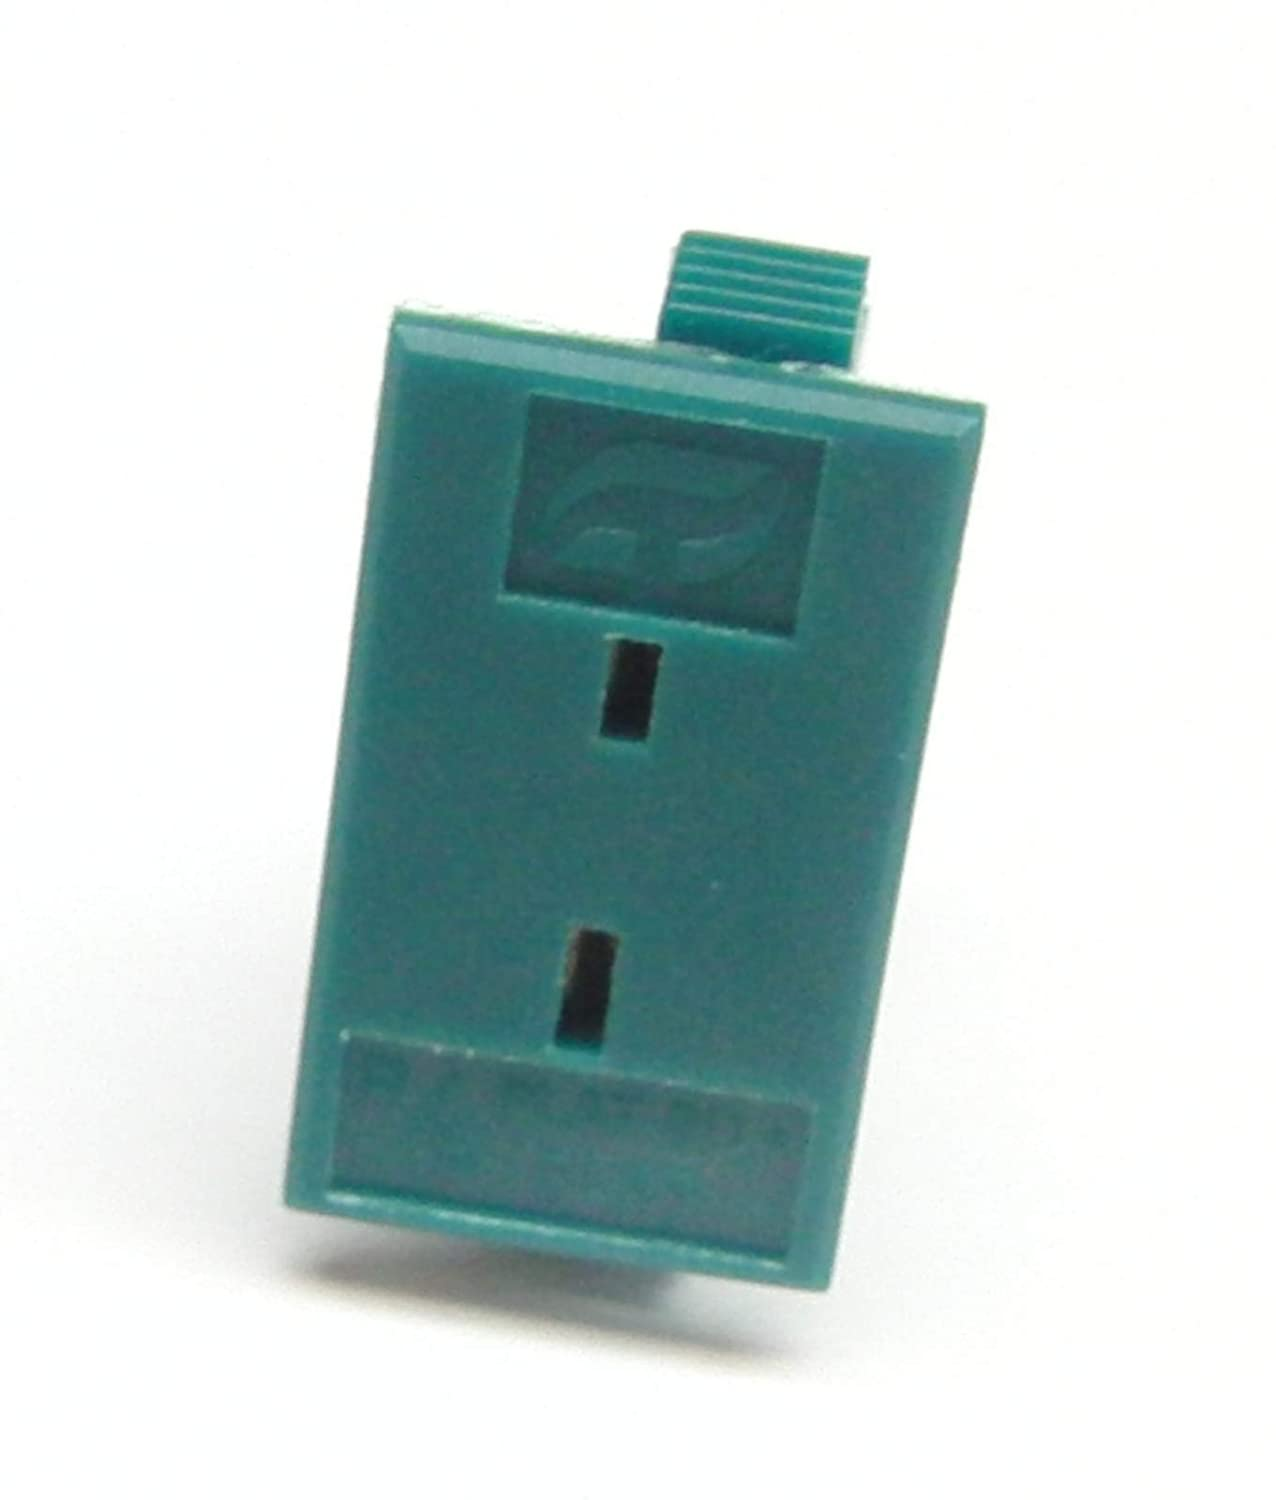 Panel Mount R-Type and S-Type thermocouple Miniature Jack Socket for Miniature thermocouple Connector Plug